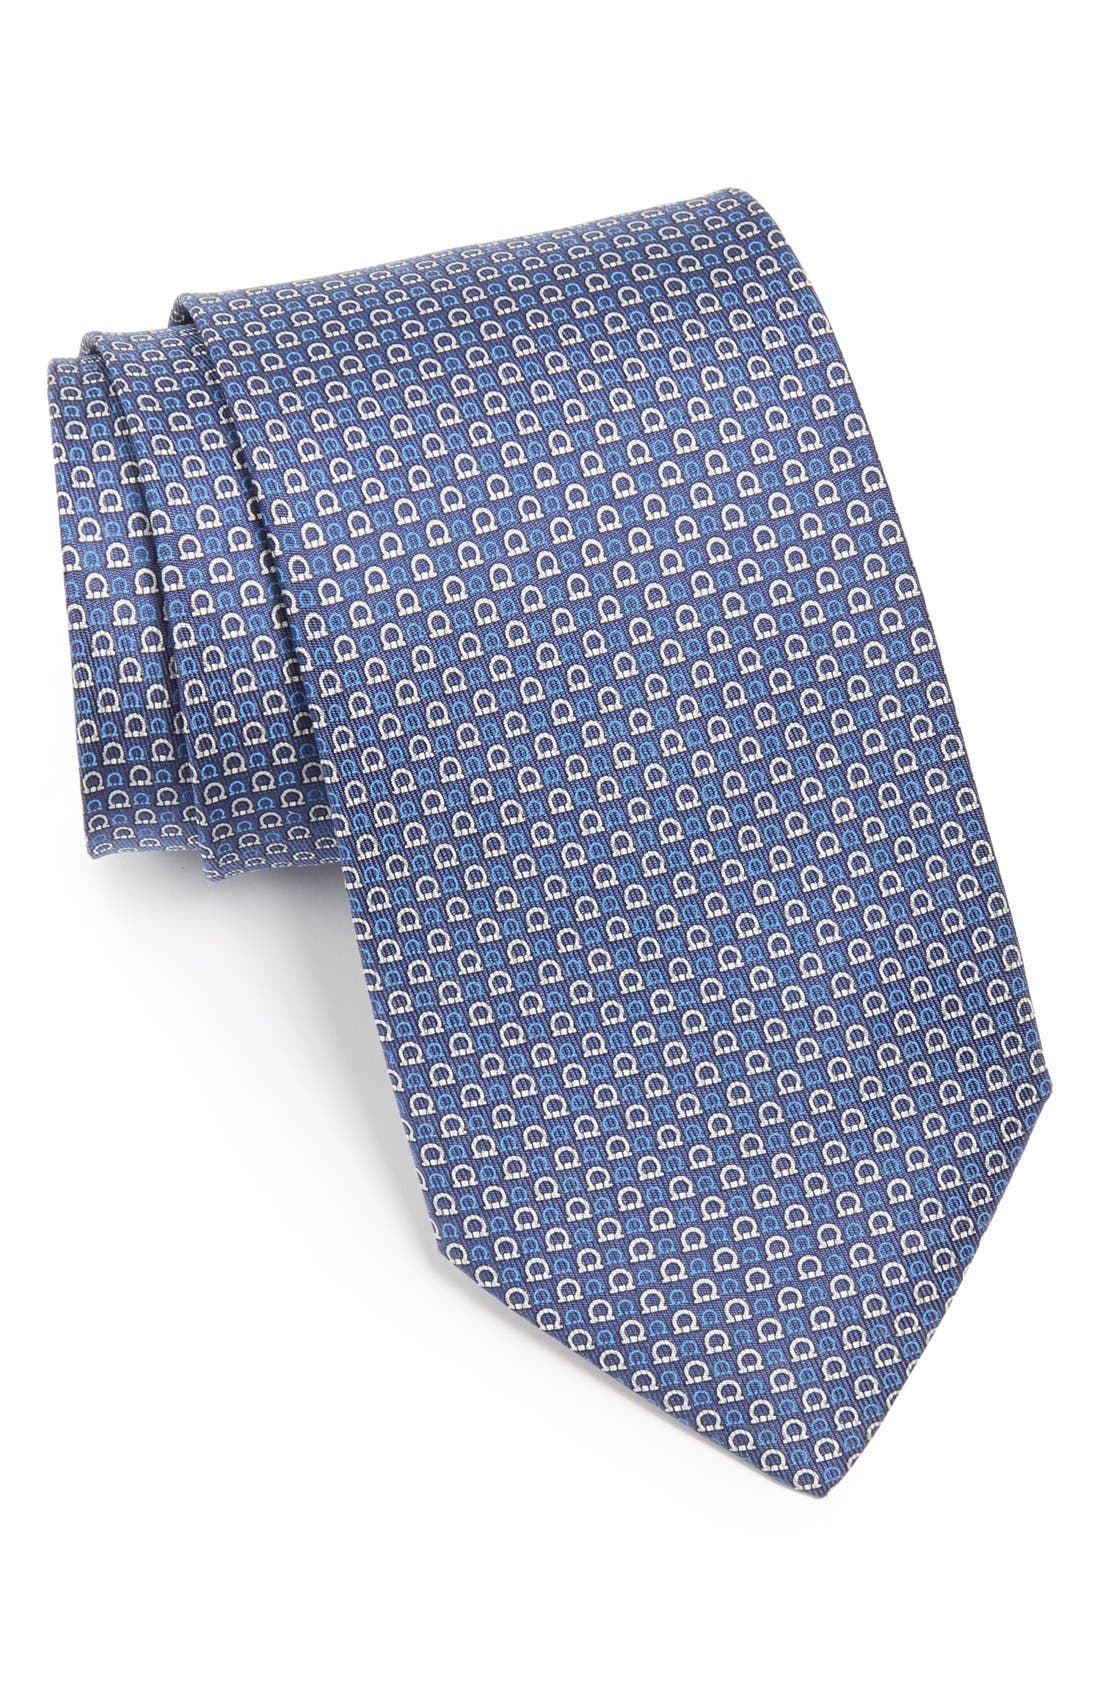 Alternate Image 1 Selected - Salvatore Ferragamo Gancini Print Tie